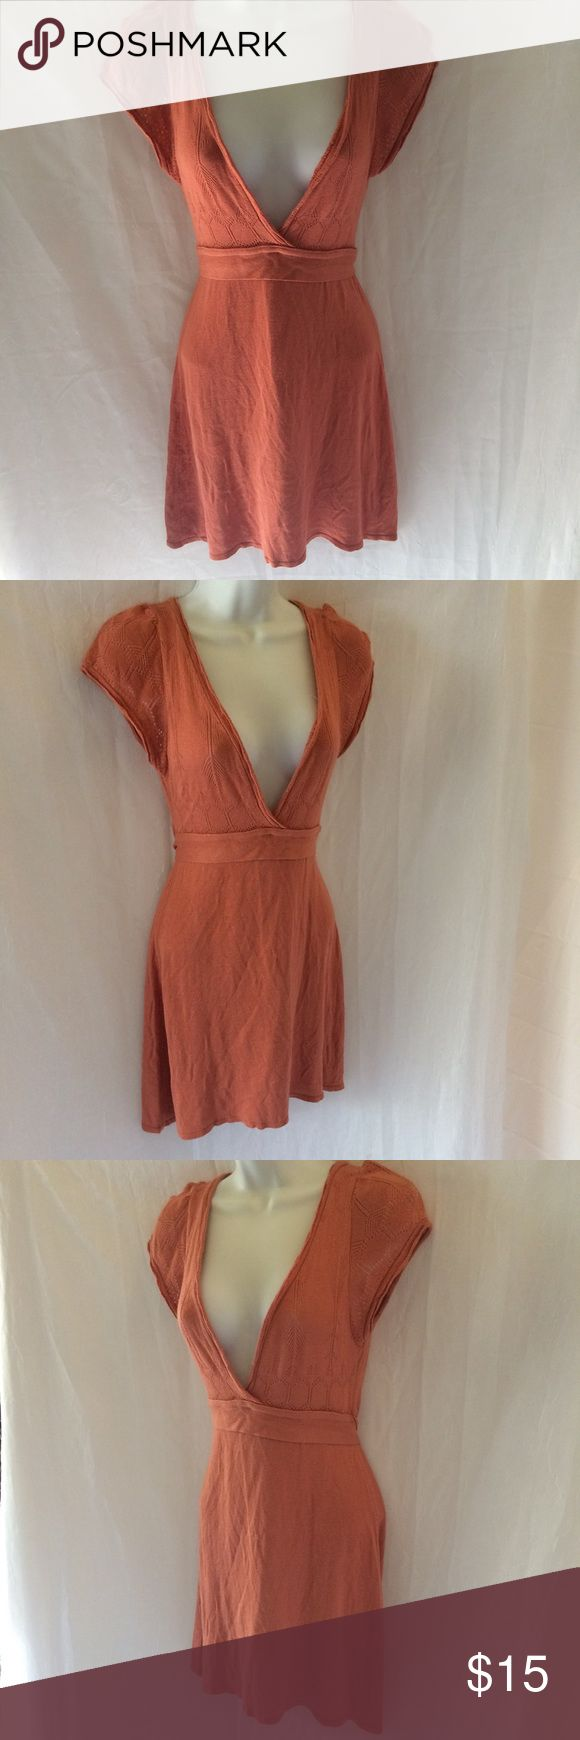 Knit Top Bt Dolca Vita Knit Top Bt Dolca Vita Burnt Orange Color Tie Back Very Open Front Mid Length Made In USA RN# 39455 Dolca Vita Tops Blouses